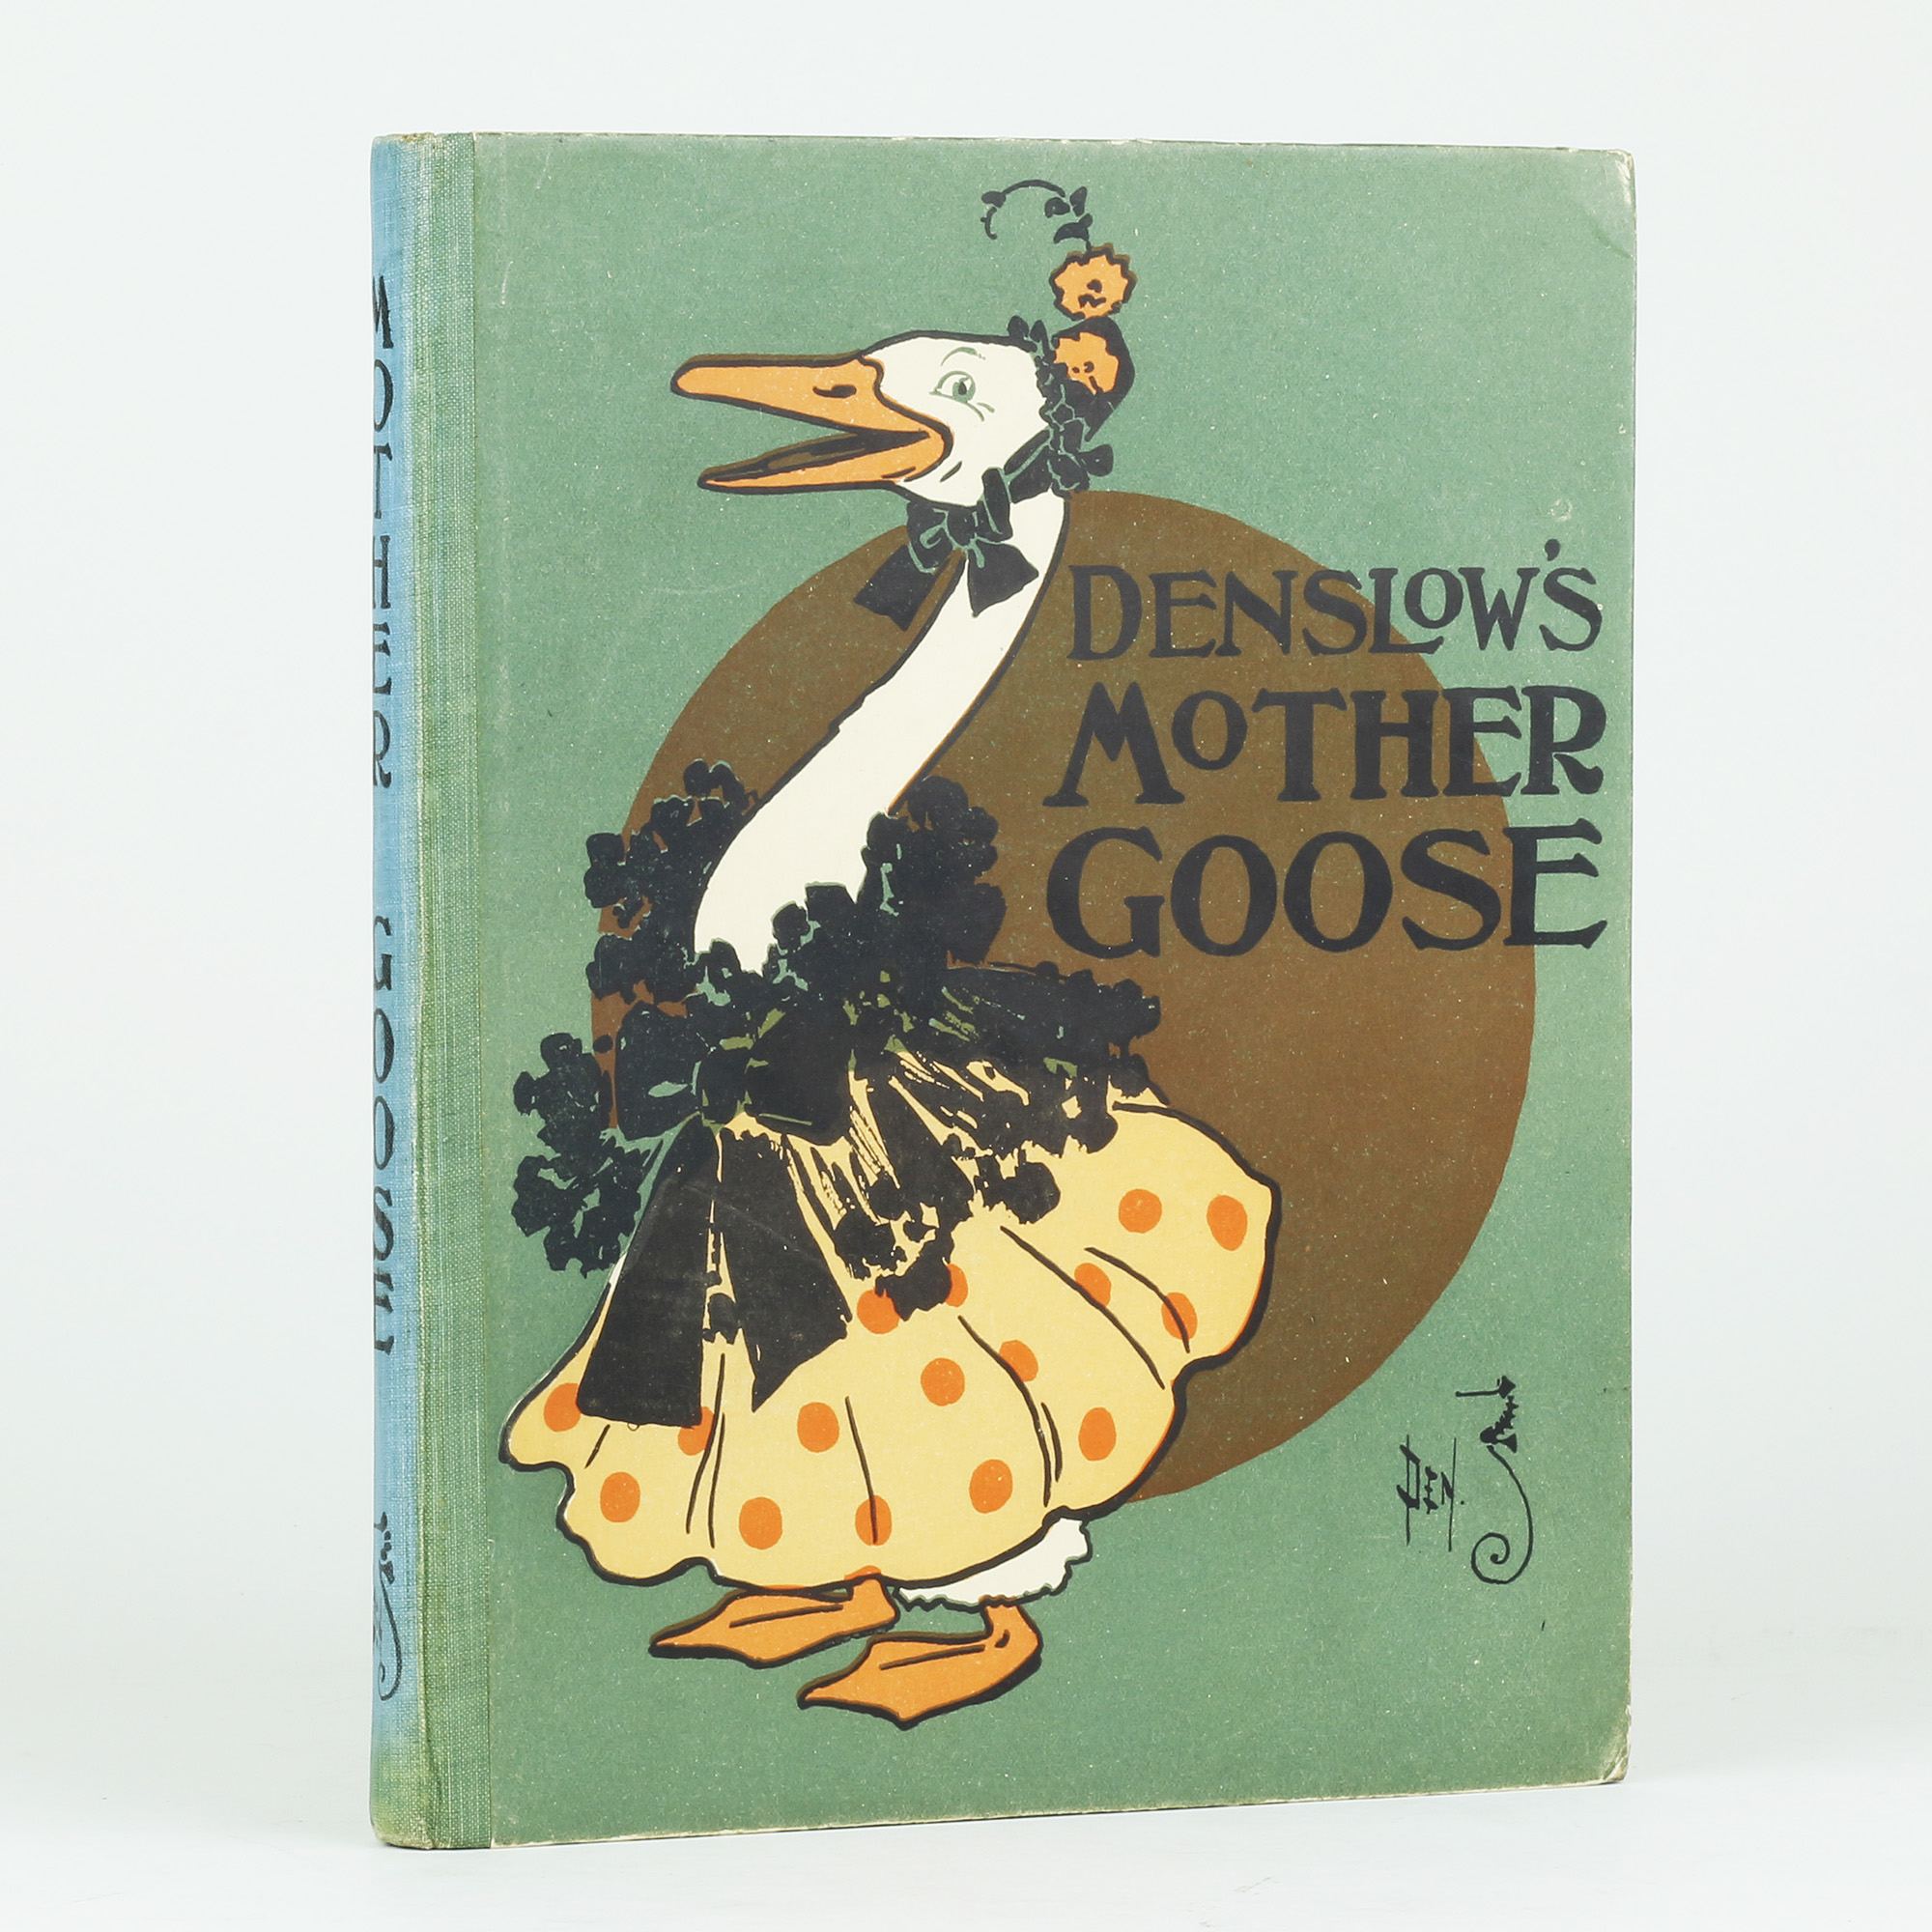 Denslow' Mother Goose Denslow . - Jonkers Rare Books